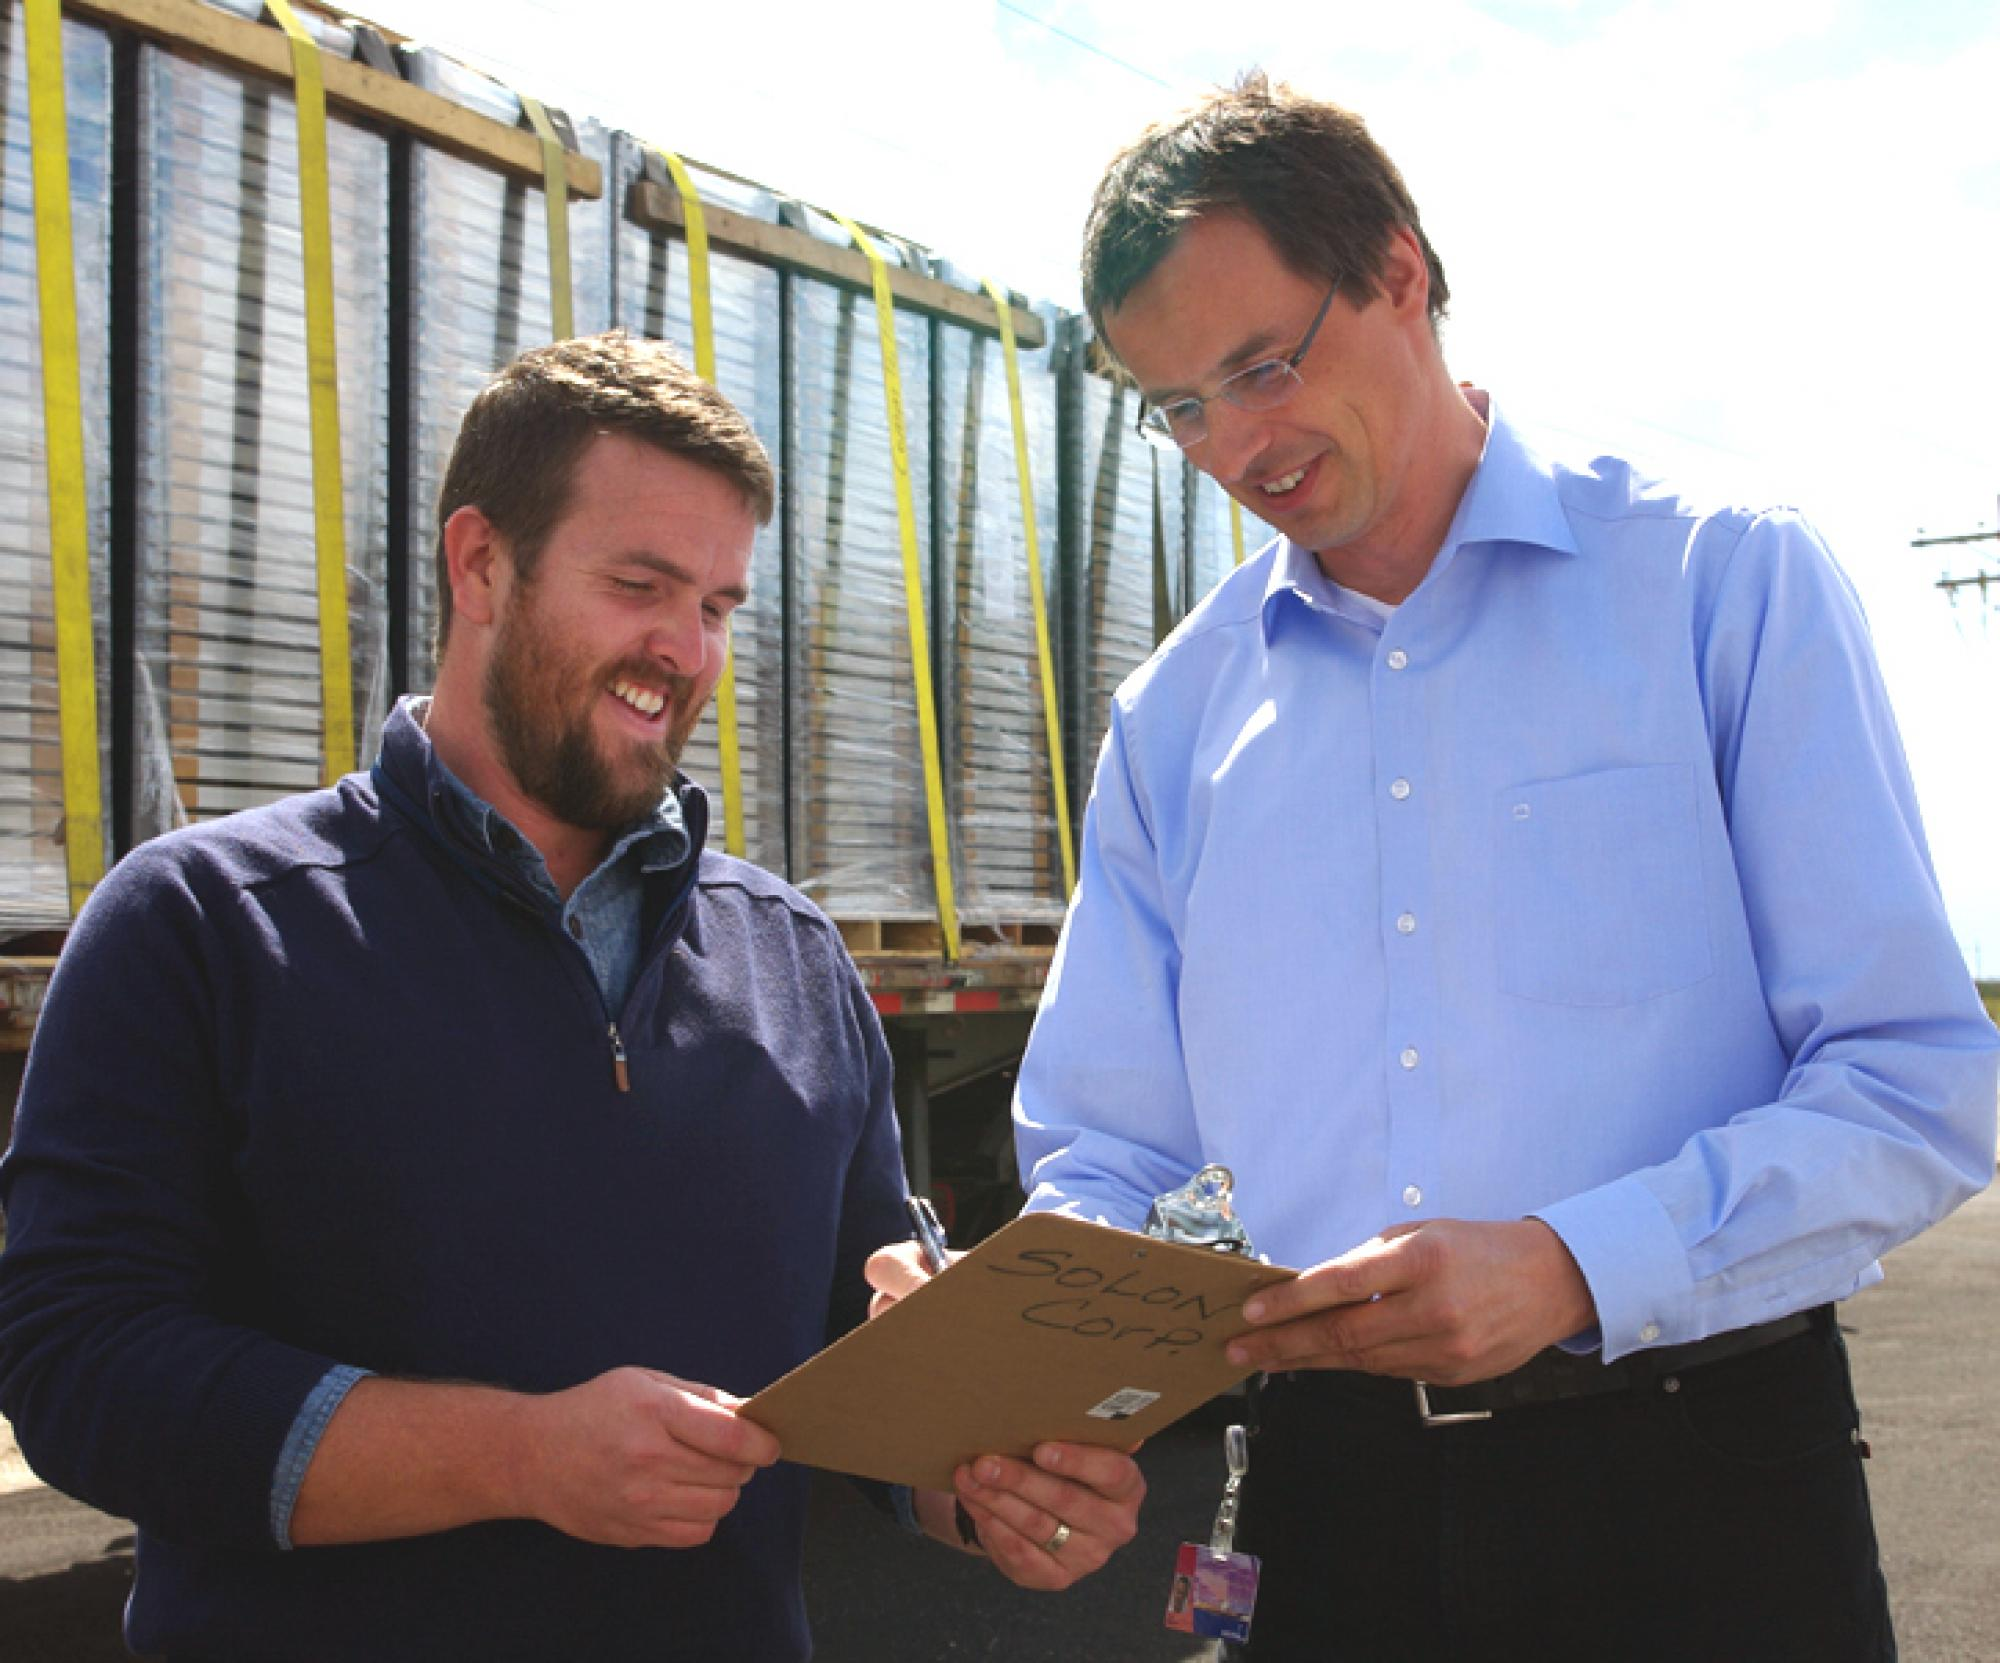 SOLON Corp. president and CEO Olaf Koester, right, signs paperwork for delivery of 470 photovoltaic modules for delivery to Biosphere 2. Nathan Allen of Biosphere 2 coordinated delivery of the panels, valued at $229,000.